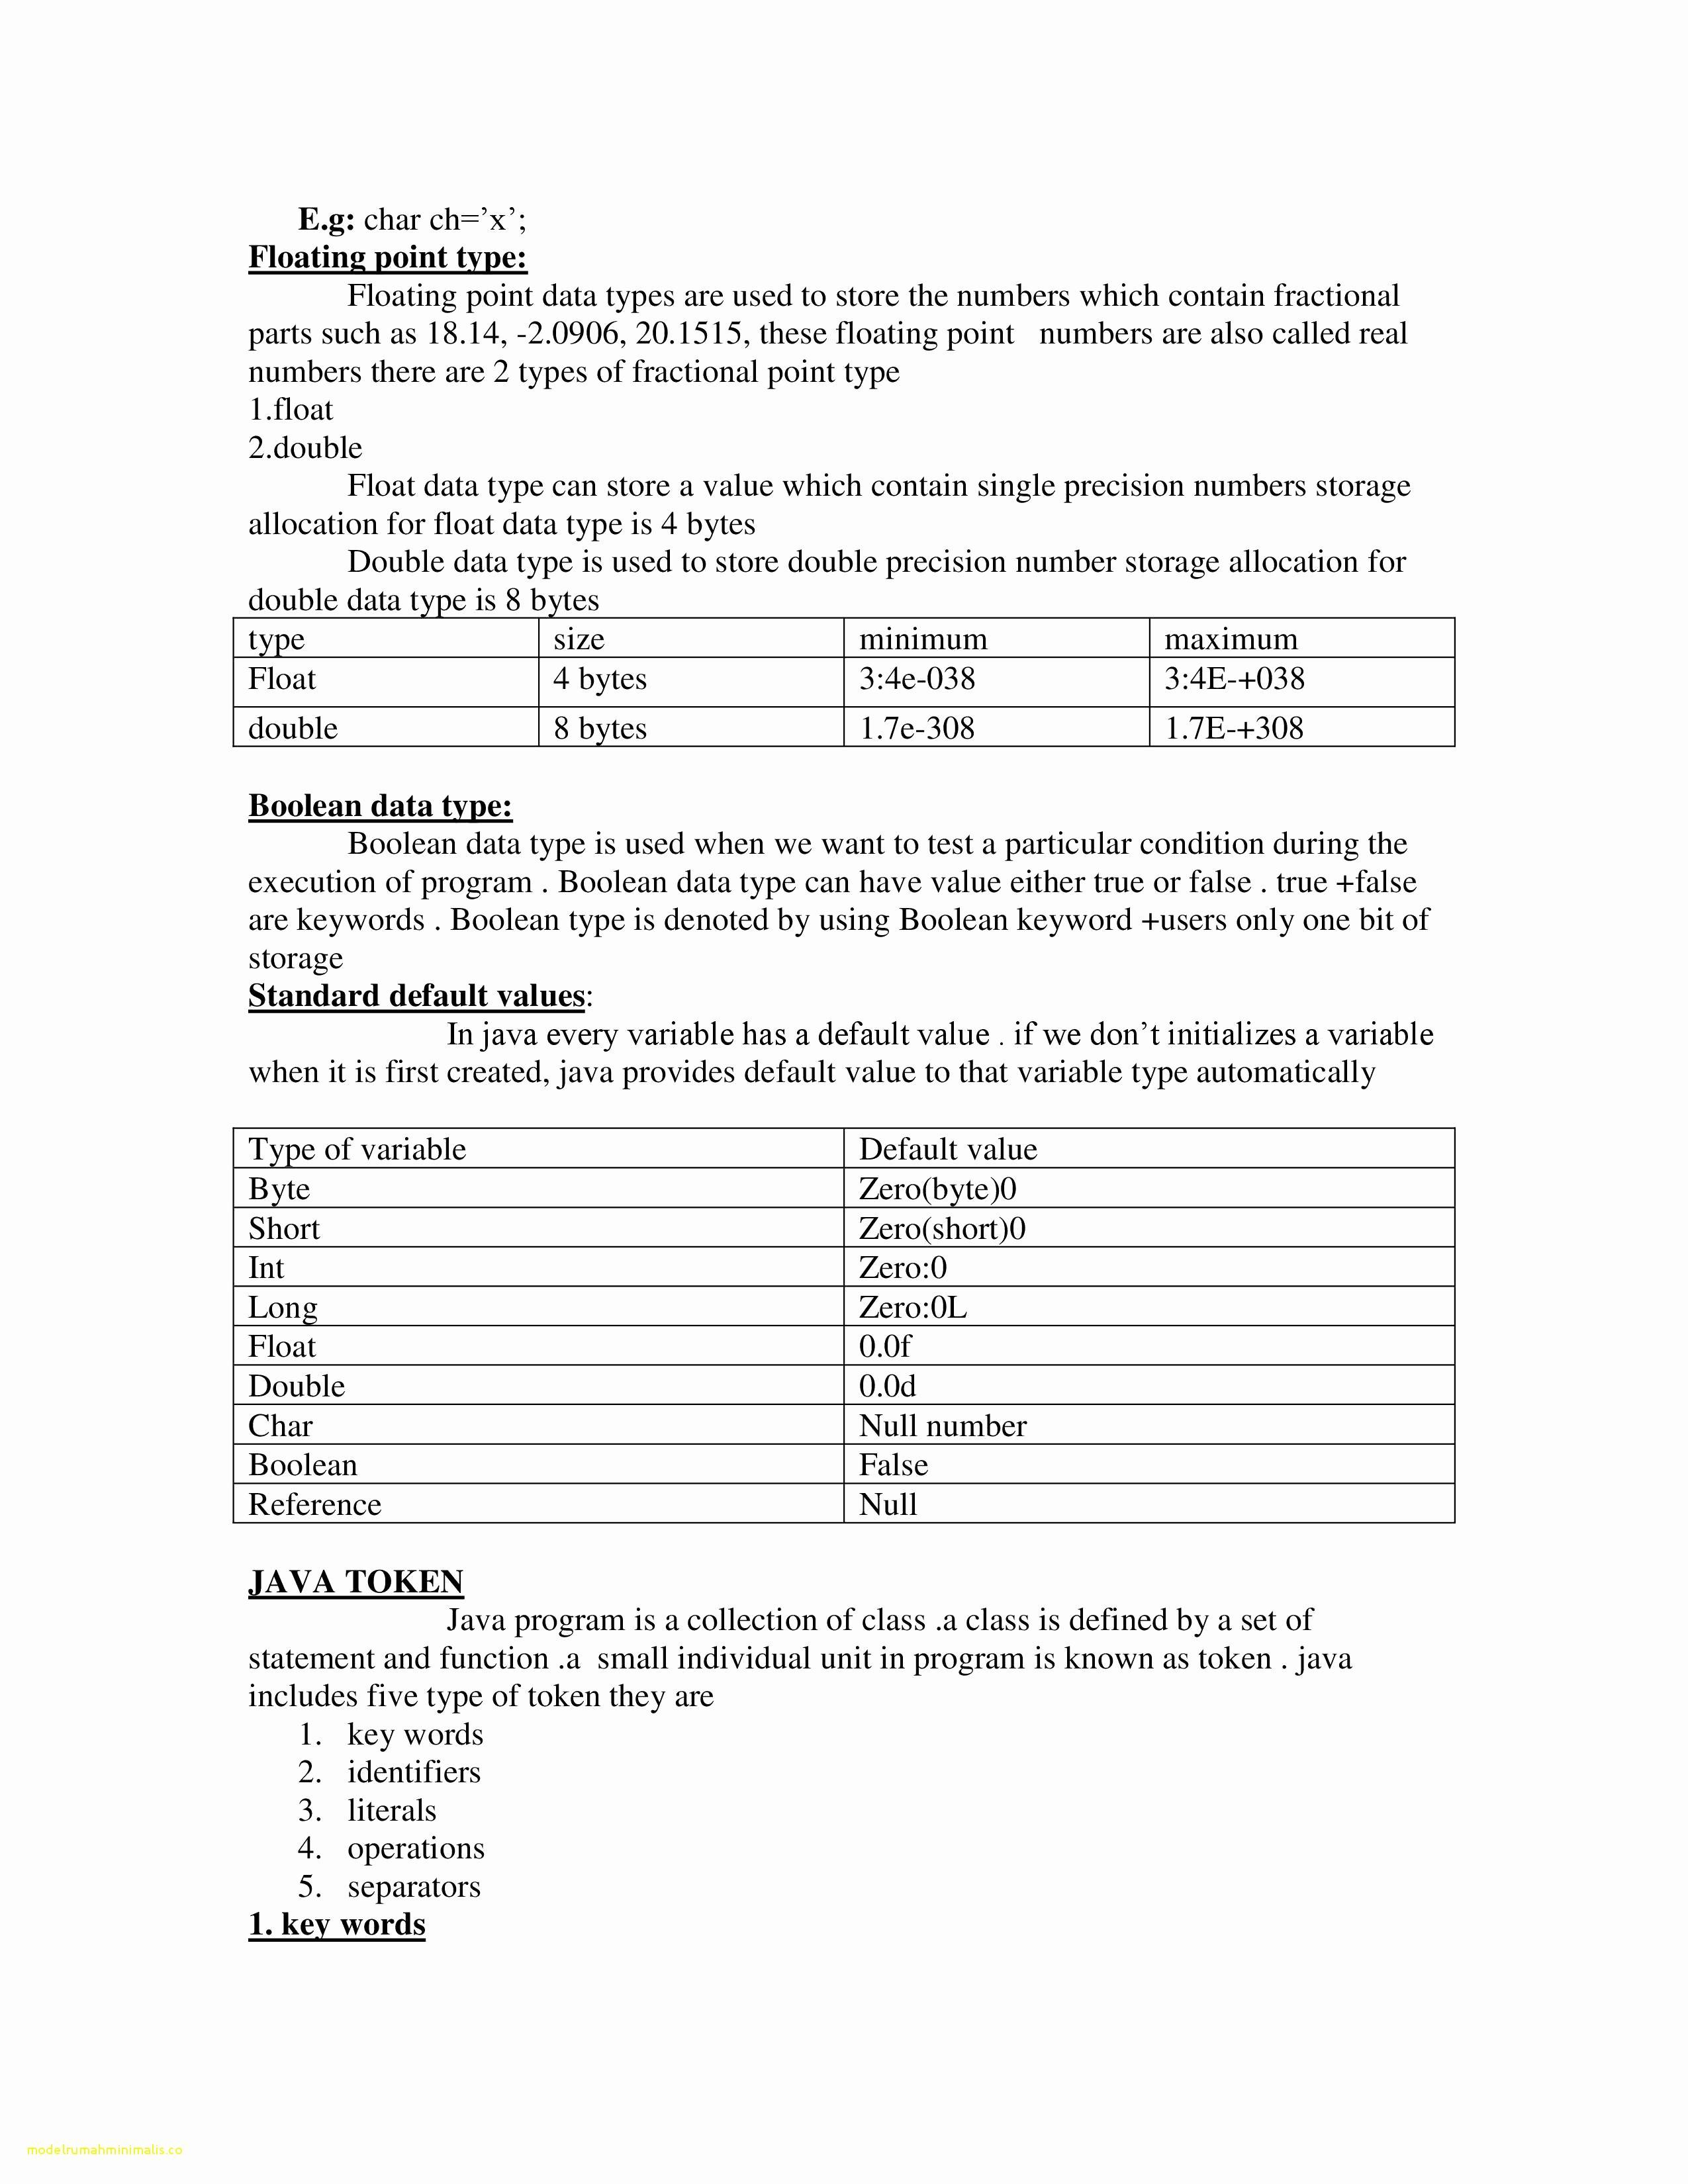 Resume Templates Latex - Curriculum Vitae Templates Latex Unique Resume Templates Latex